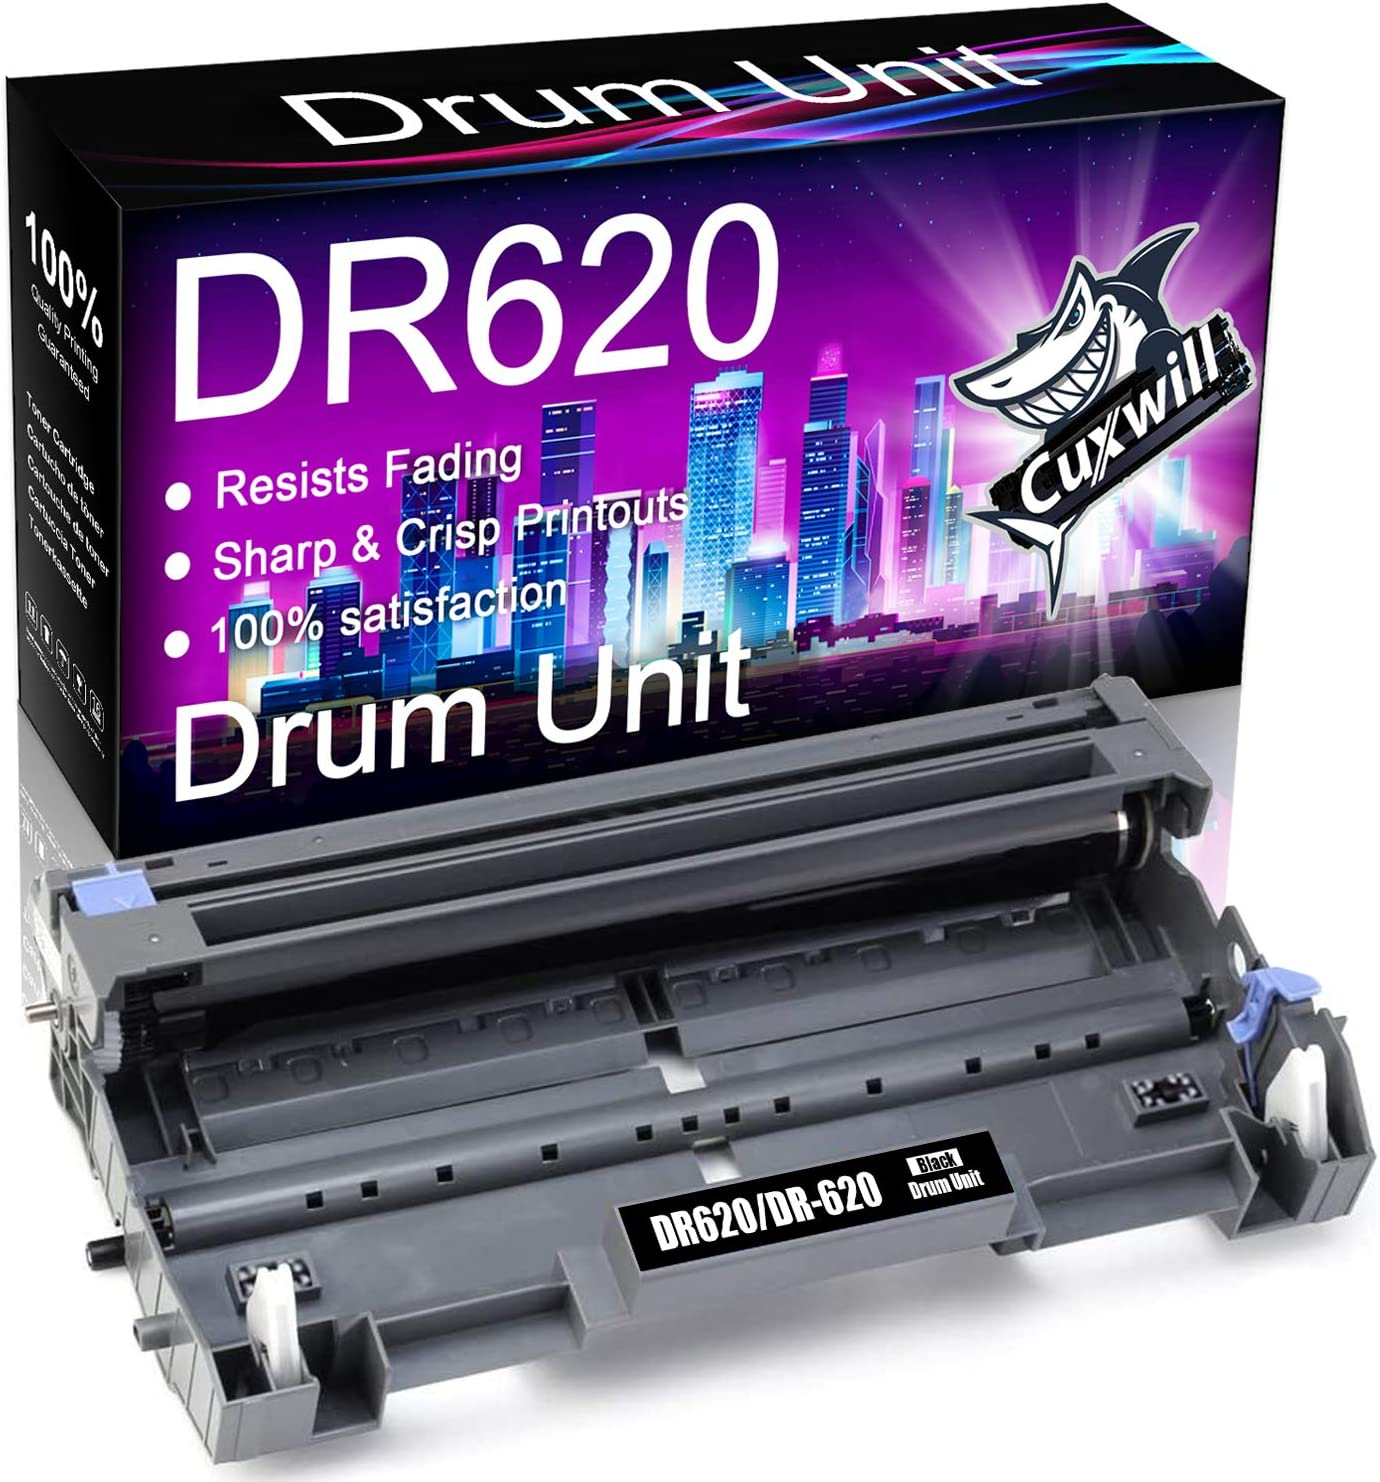 Cuxwill Compatible Drum Unit Replacement for Brother DR620 DR520 to use with HL-5370DW MFC-8890DW HL-5250DN HL-5240 HL-5340D MFC-8460N MFC-8480DN MFC-8660DN MFC-8680DN MFC-8690DW MFC-8860DN Printer